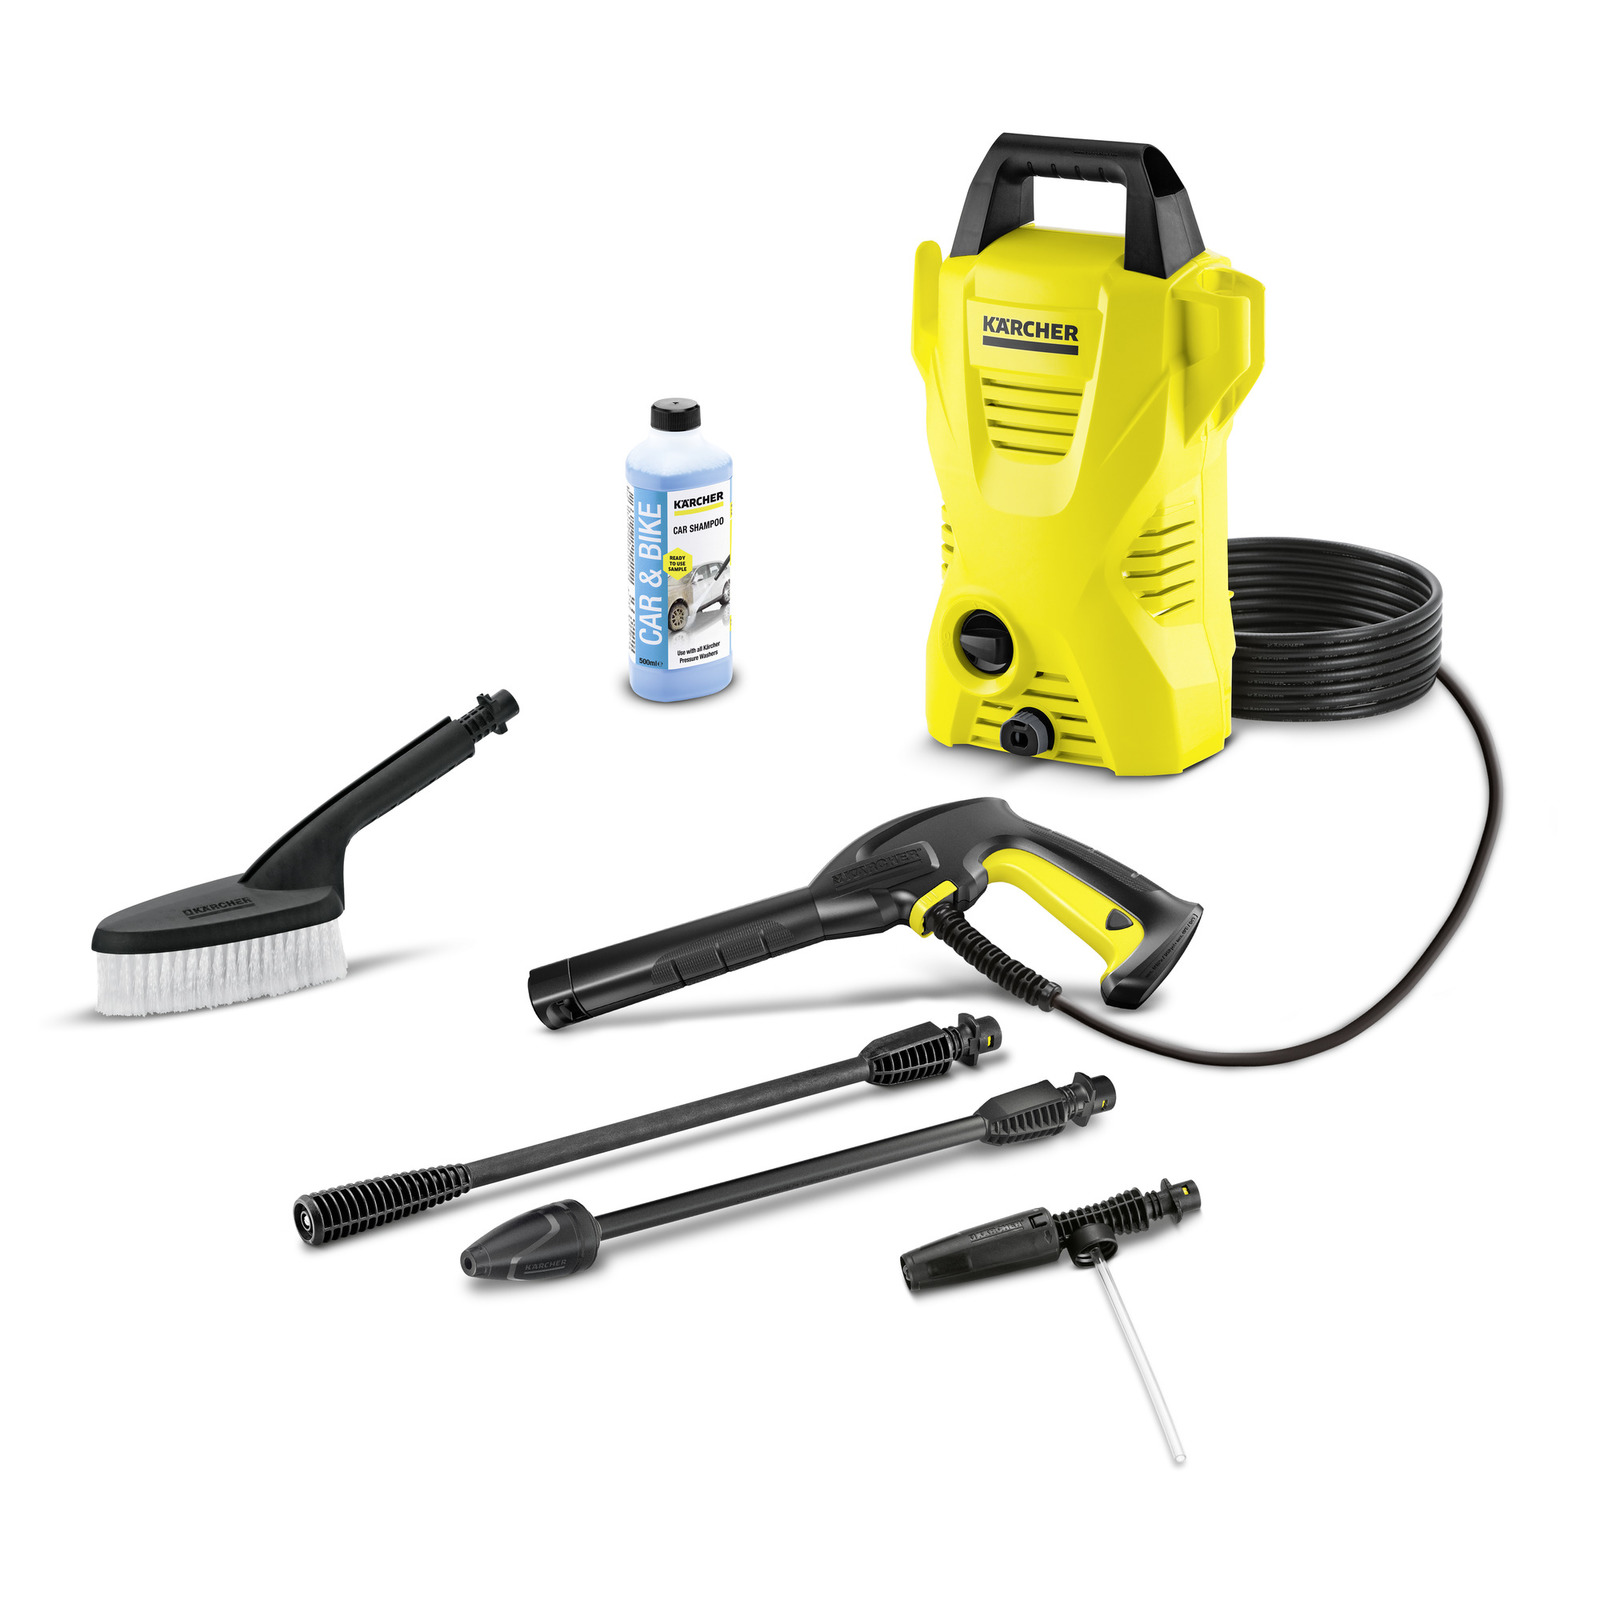 Lot 30556 - V Brand New Karcher K2 Compact Car High Pressure Cleaner With Wash Brush - Foam Nozzle & Car Shampoo